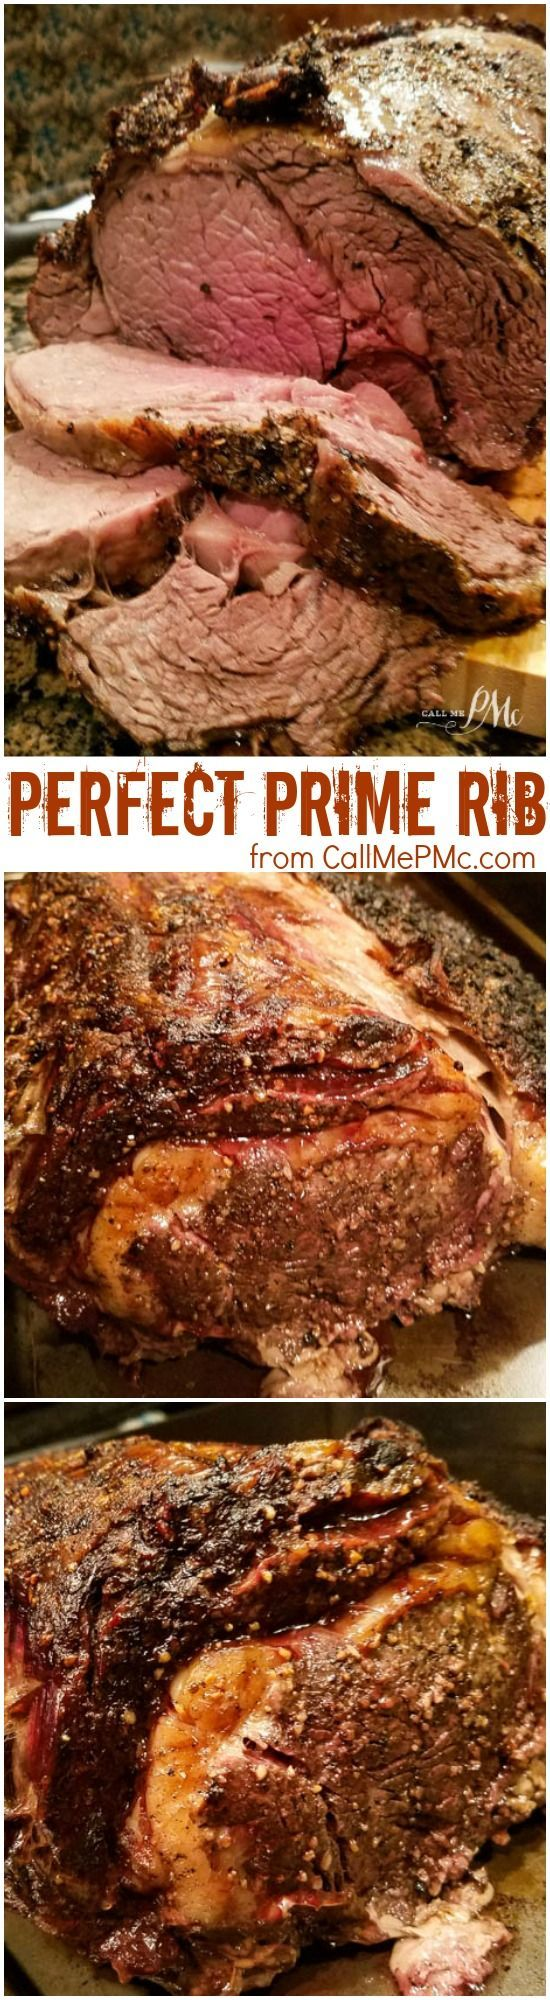 Perfect Prime Rib Medium Rare Oven Cooked recipe: